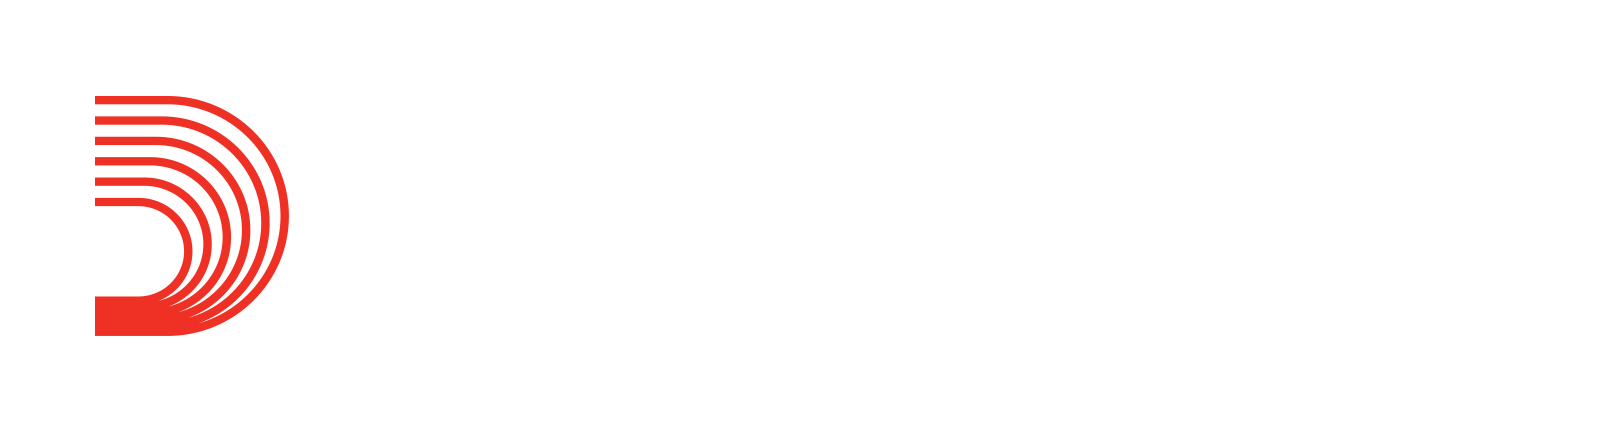 logo_daddario_4color_on_black.png